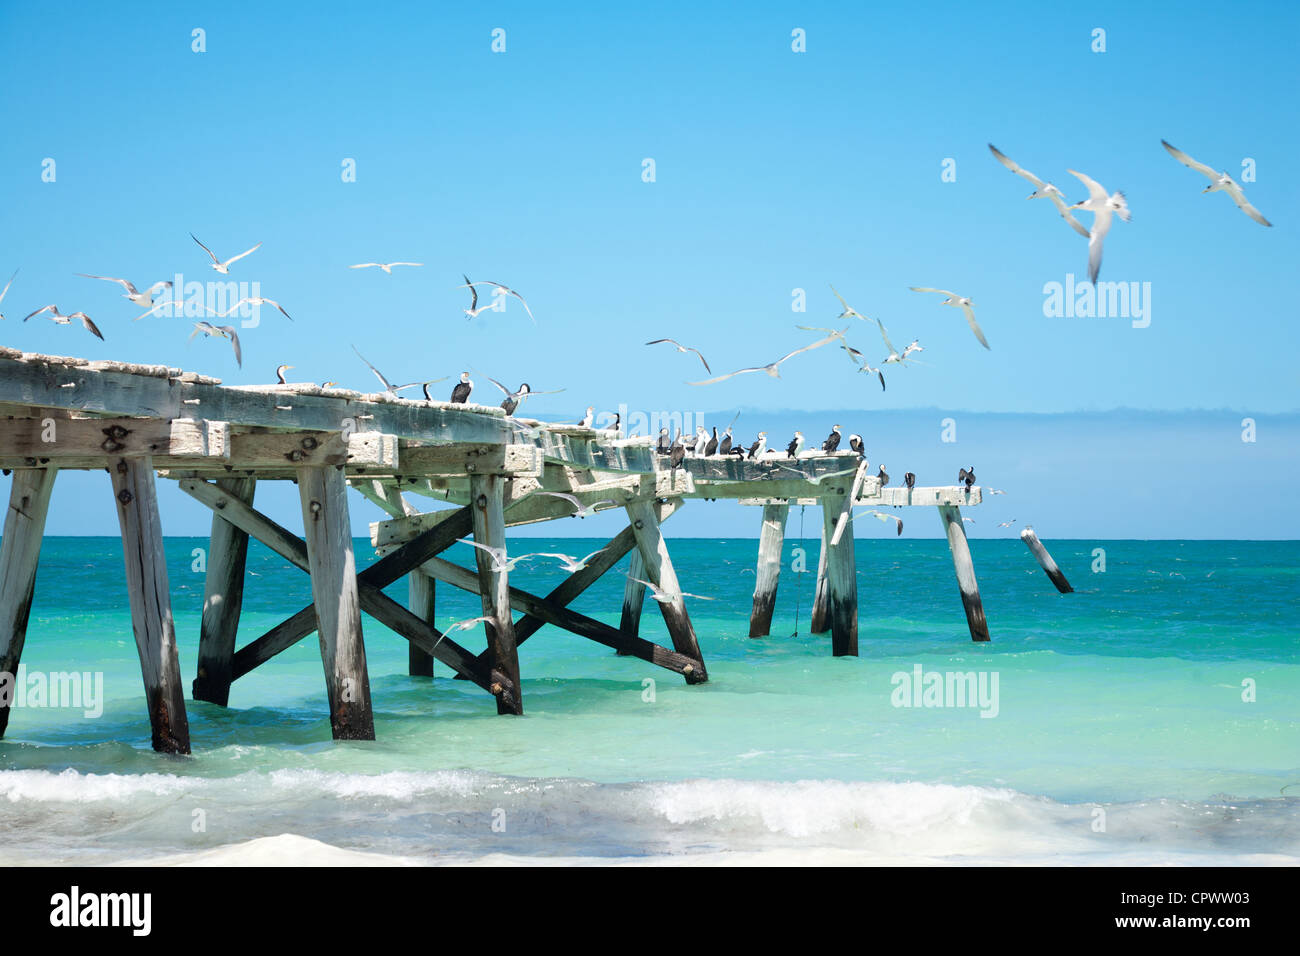 The old jetty at Eucla, Western Australia. - Stock Image